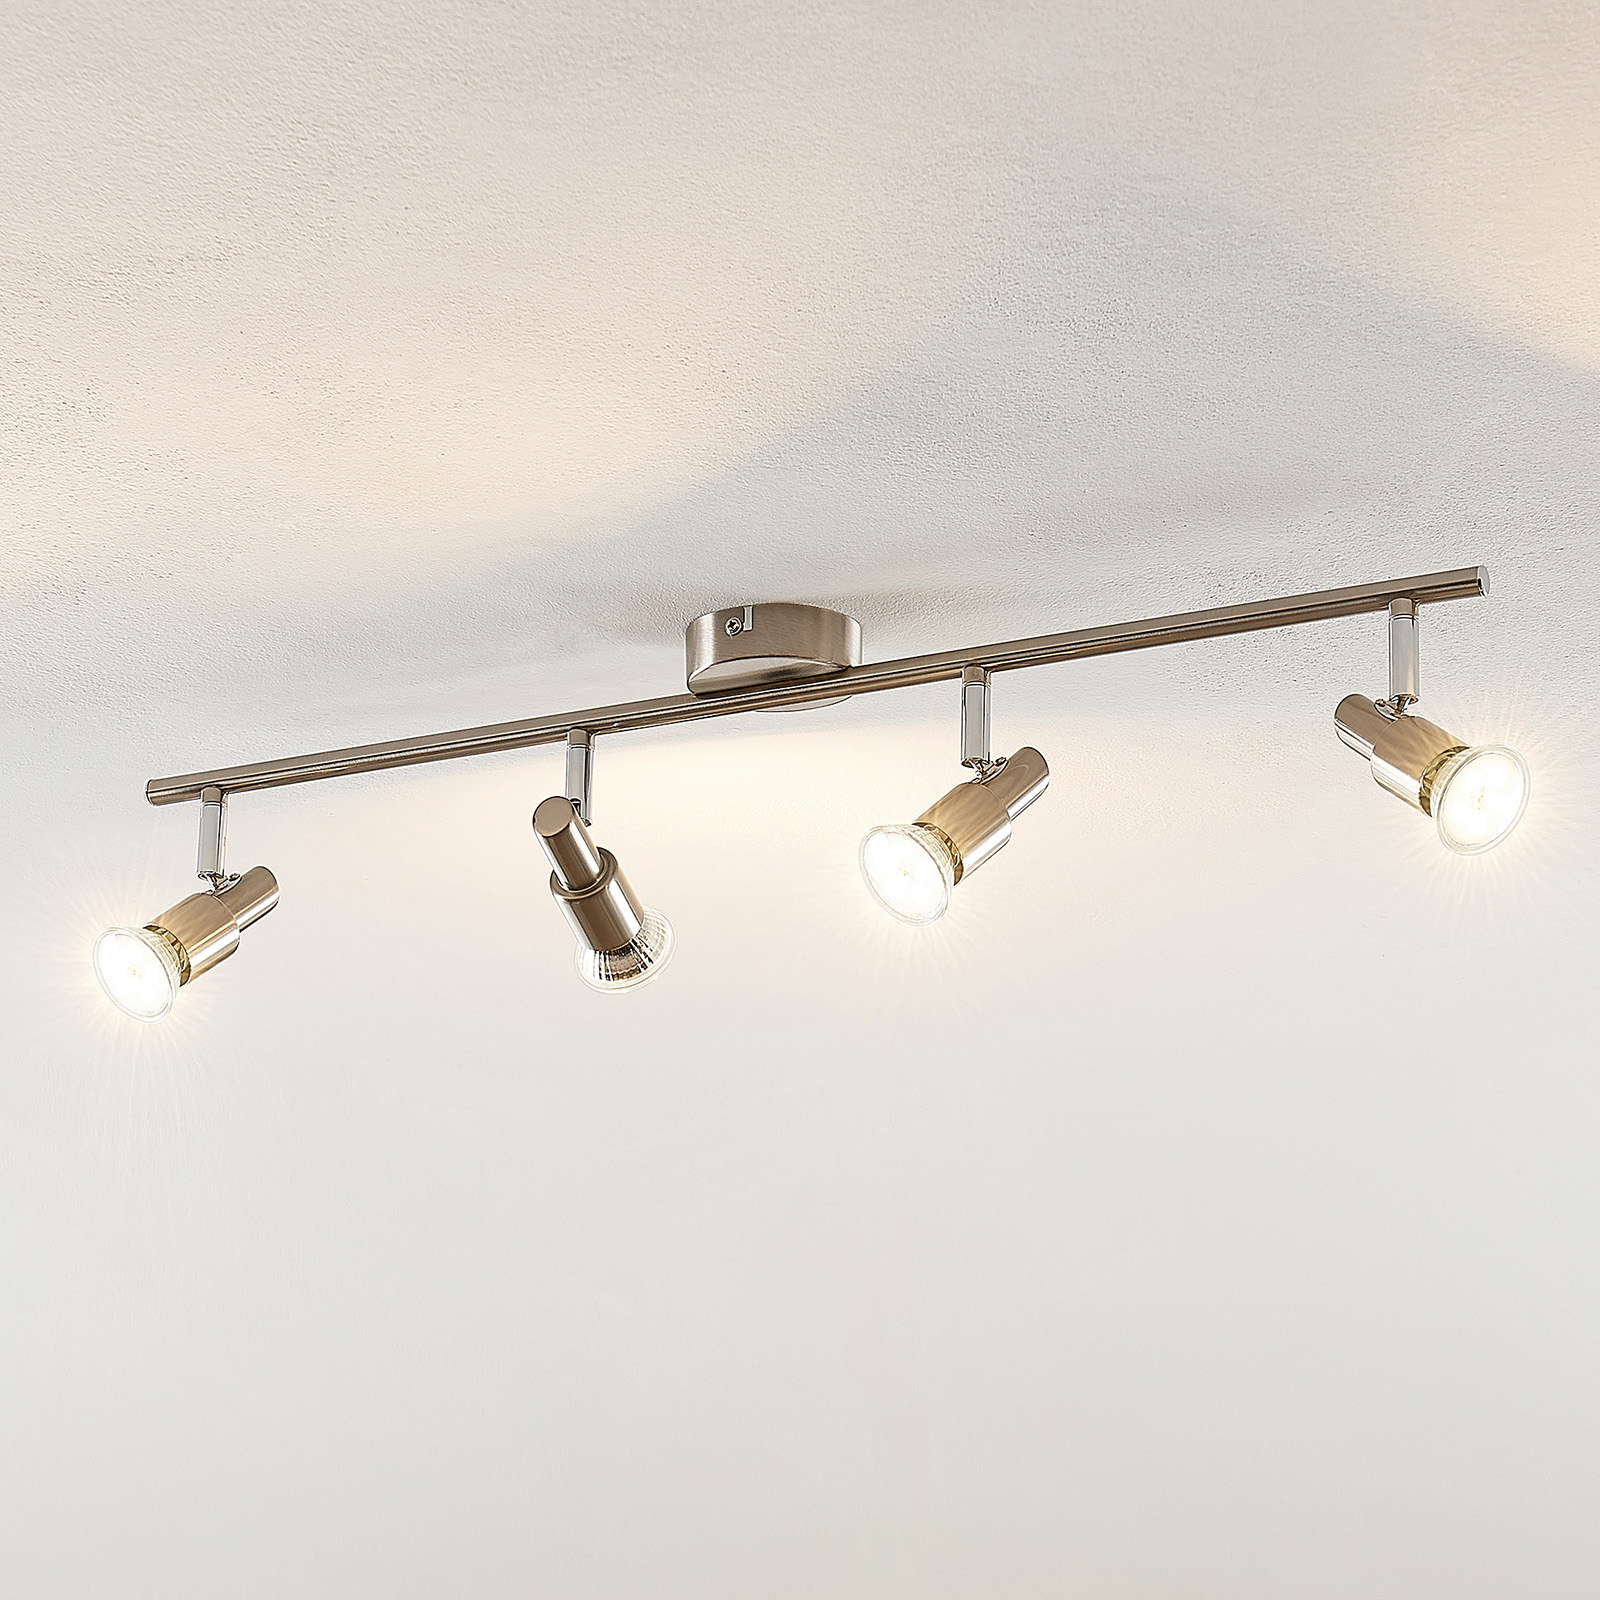 ELC Farida LED-Deckenlampe, nickel, 4-flammig